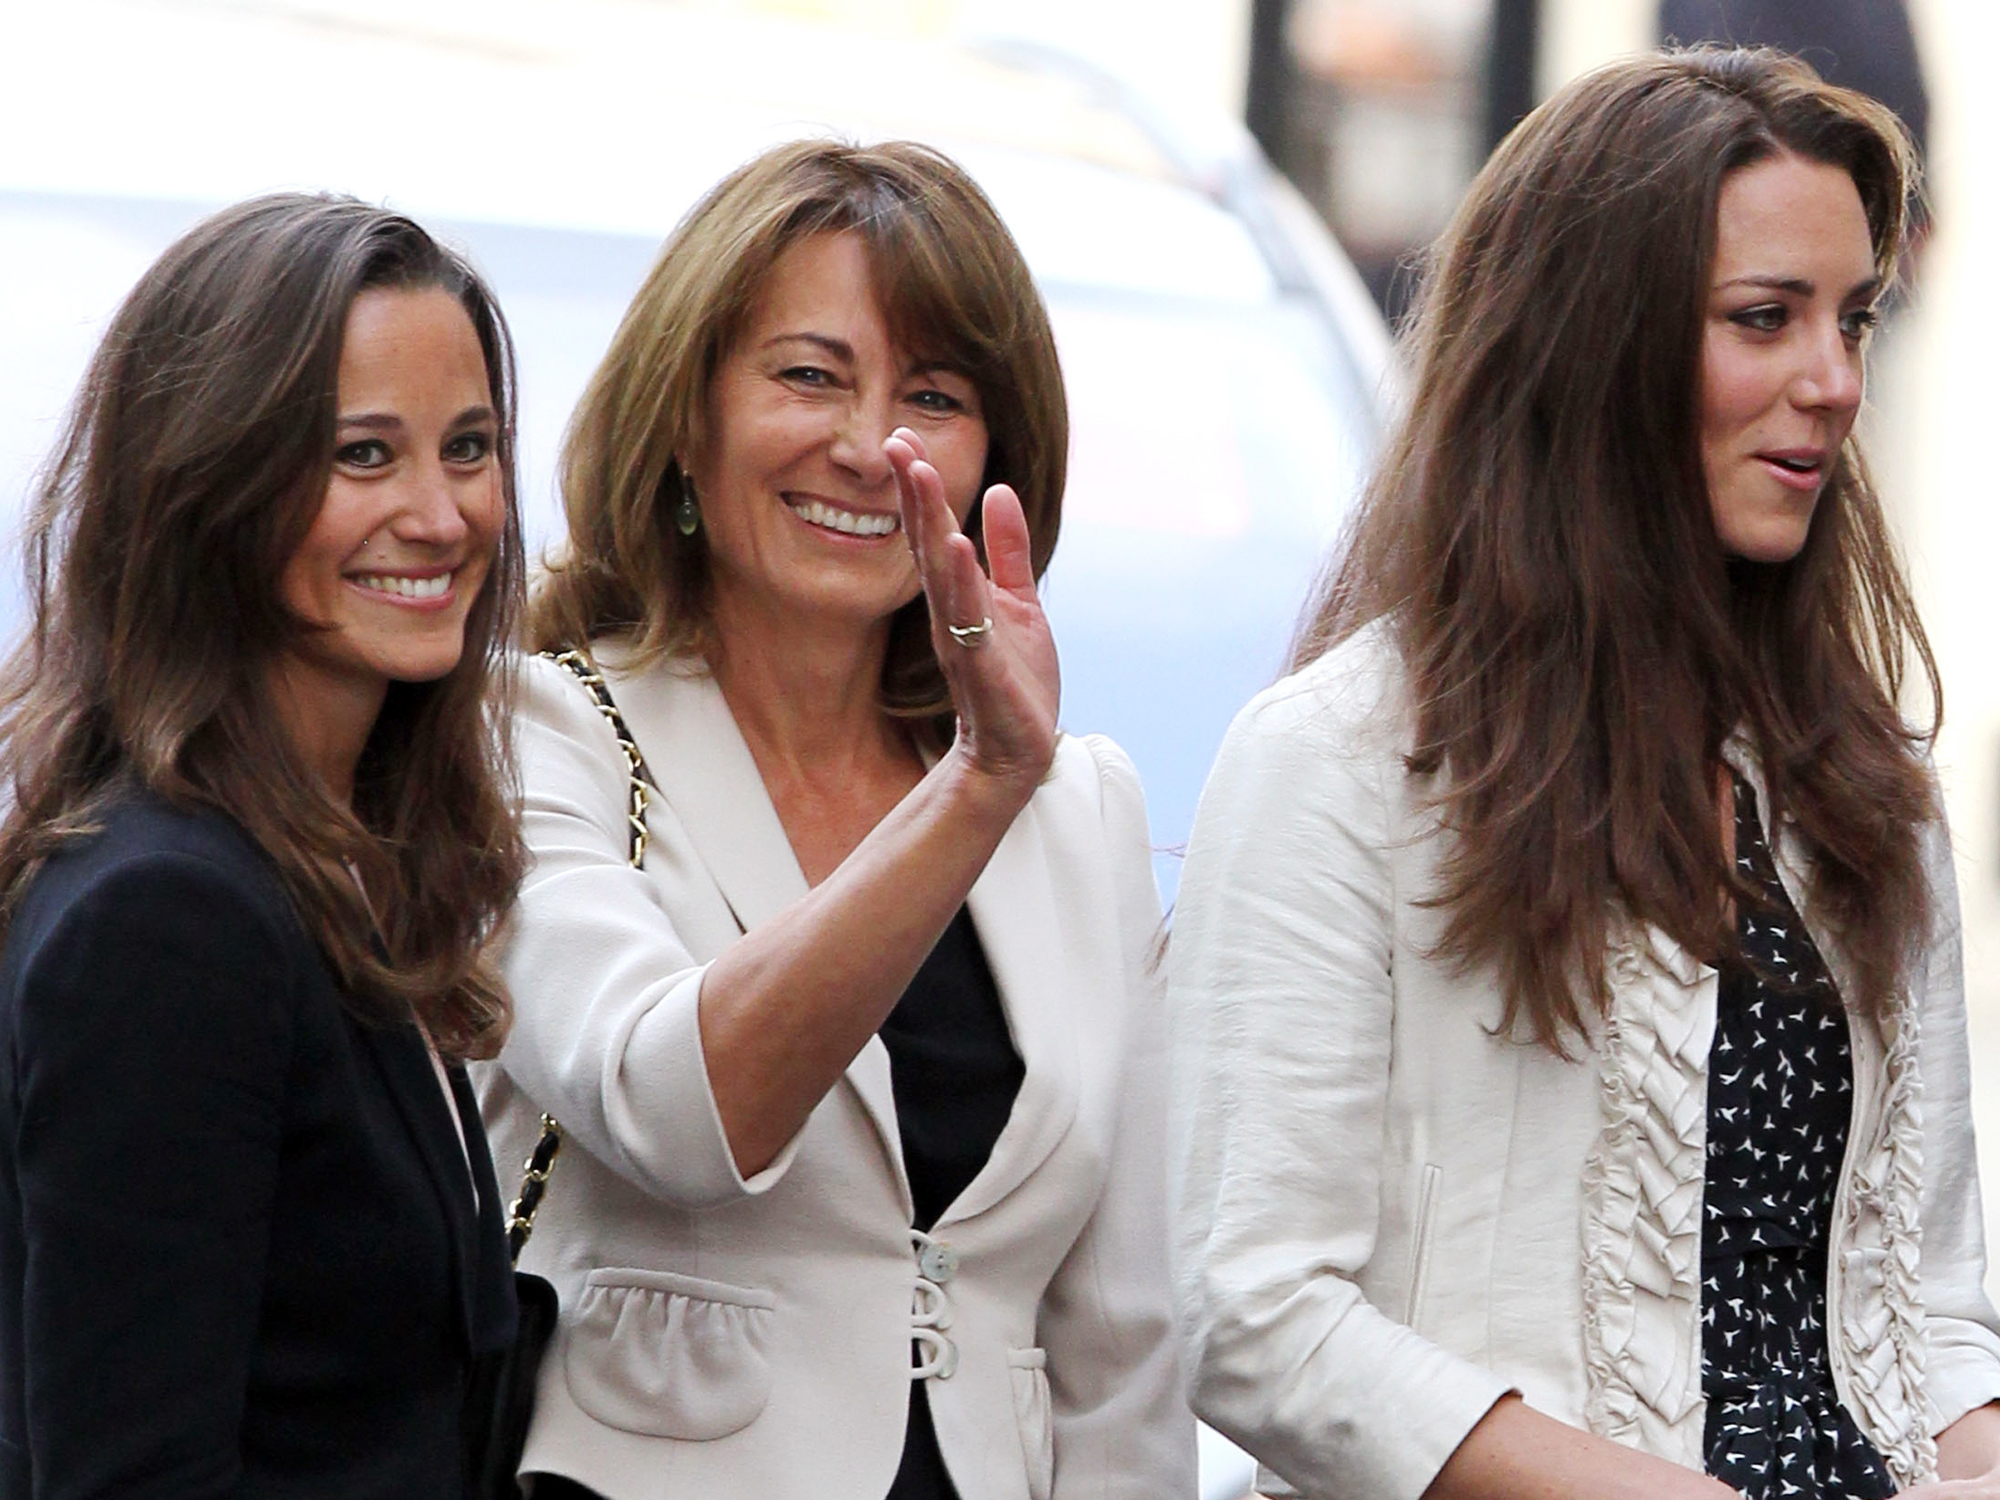 Carole Kate and Pippa Middleton